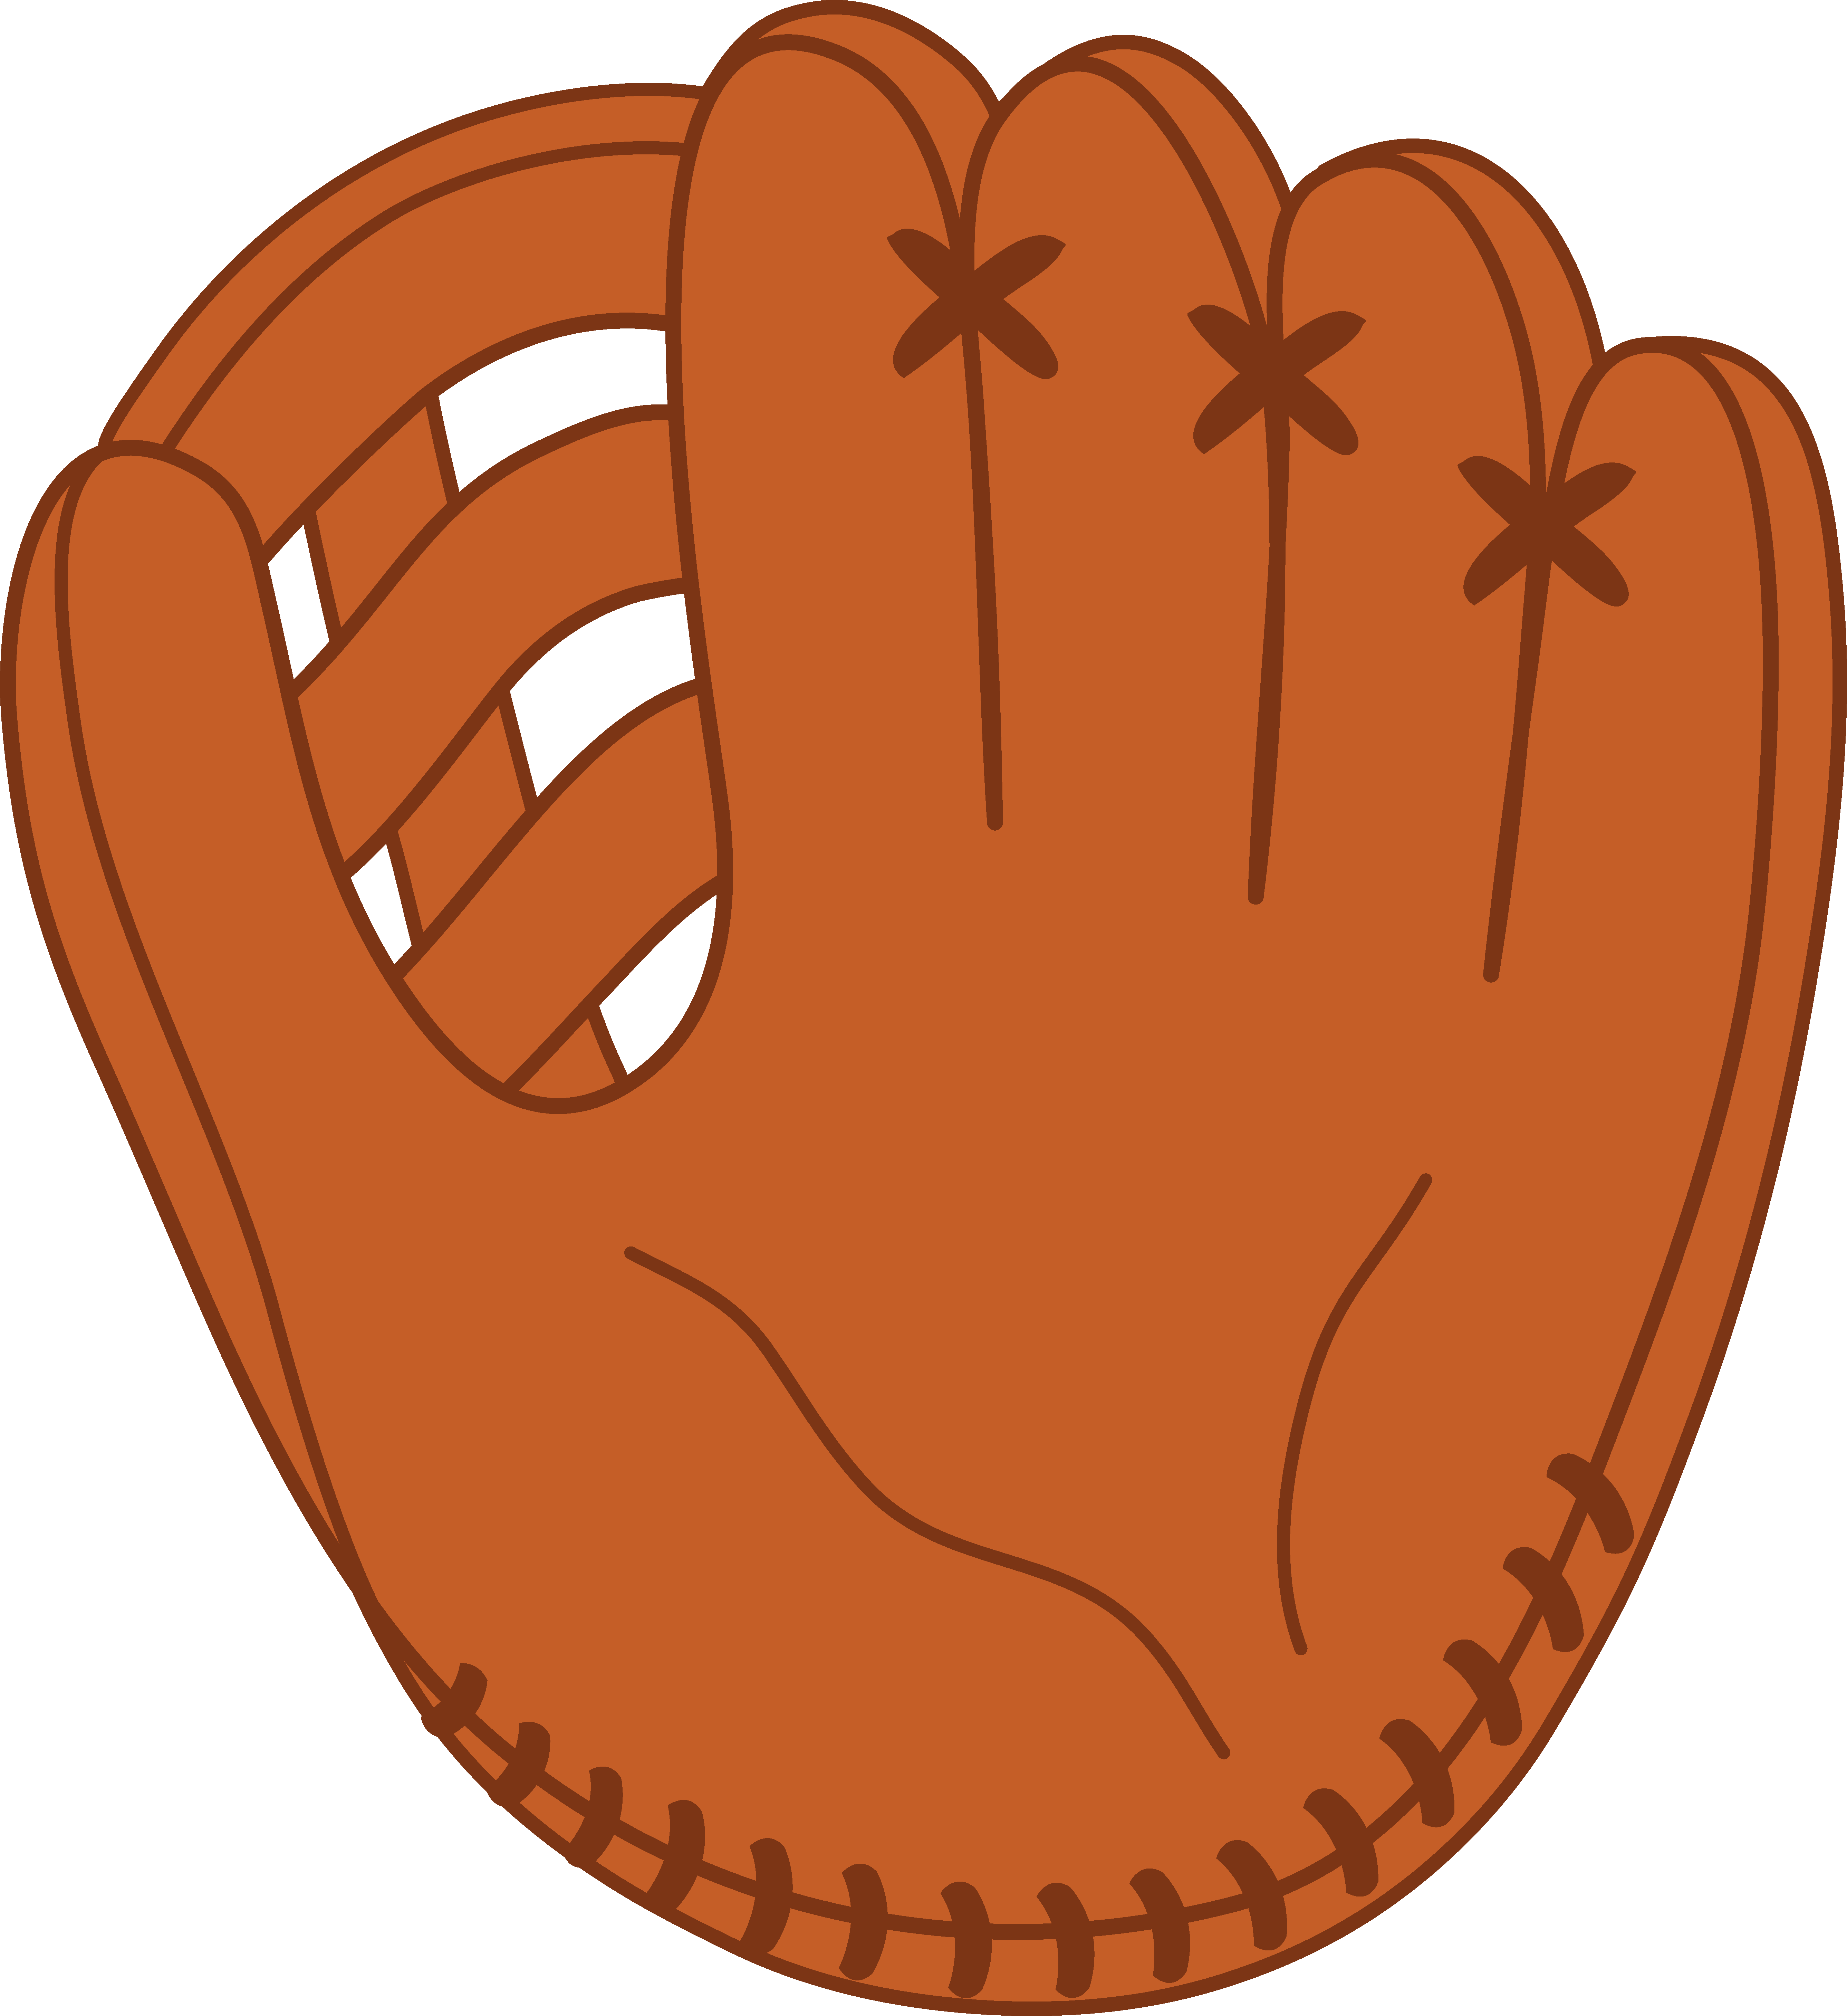 baseball glove drawing at getdrawings com free for personal use